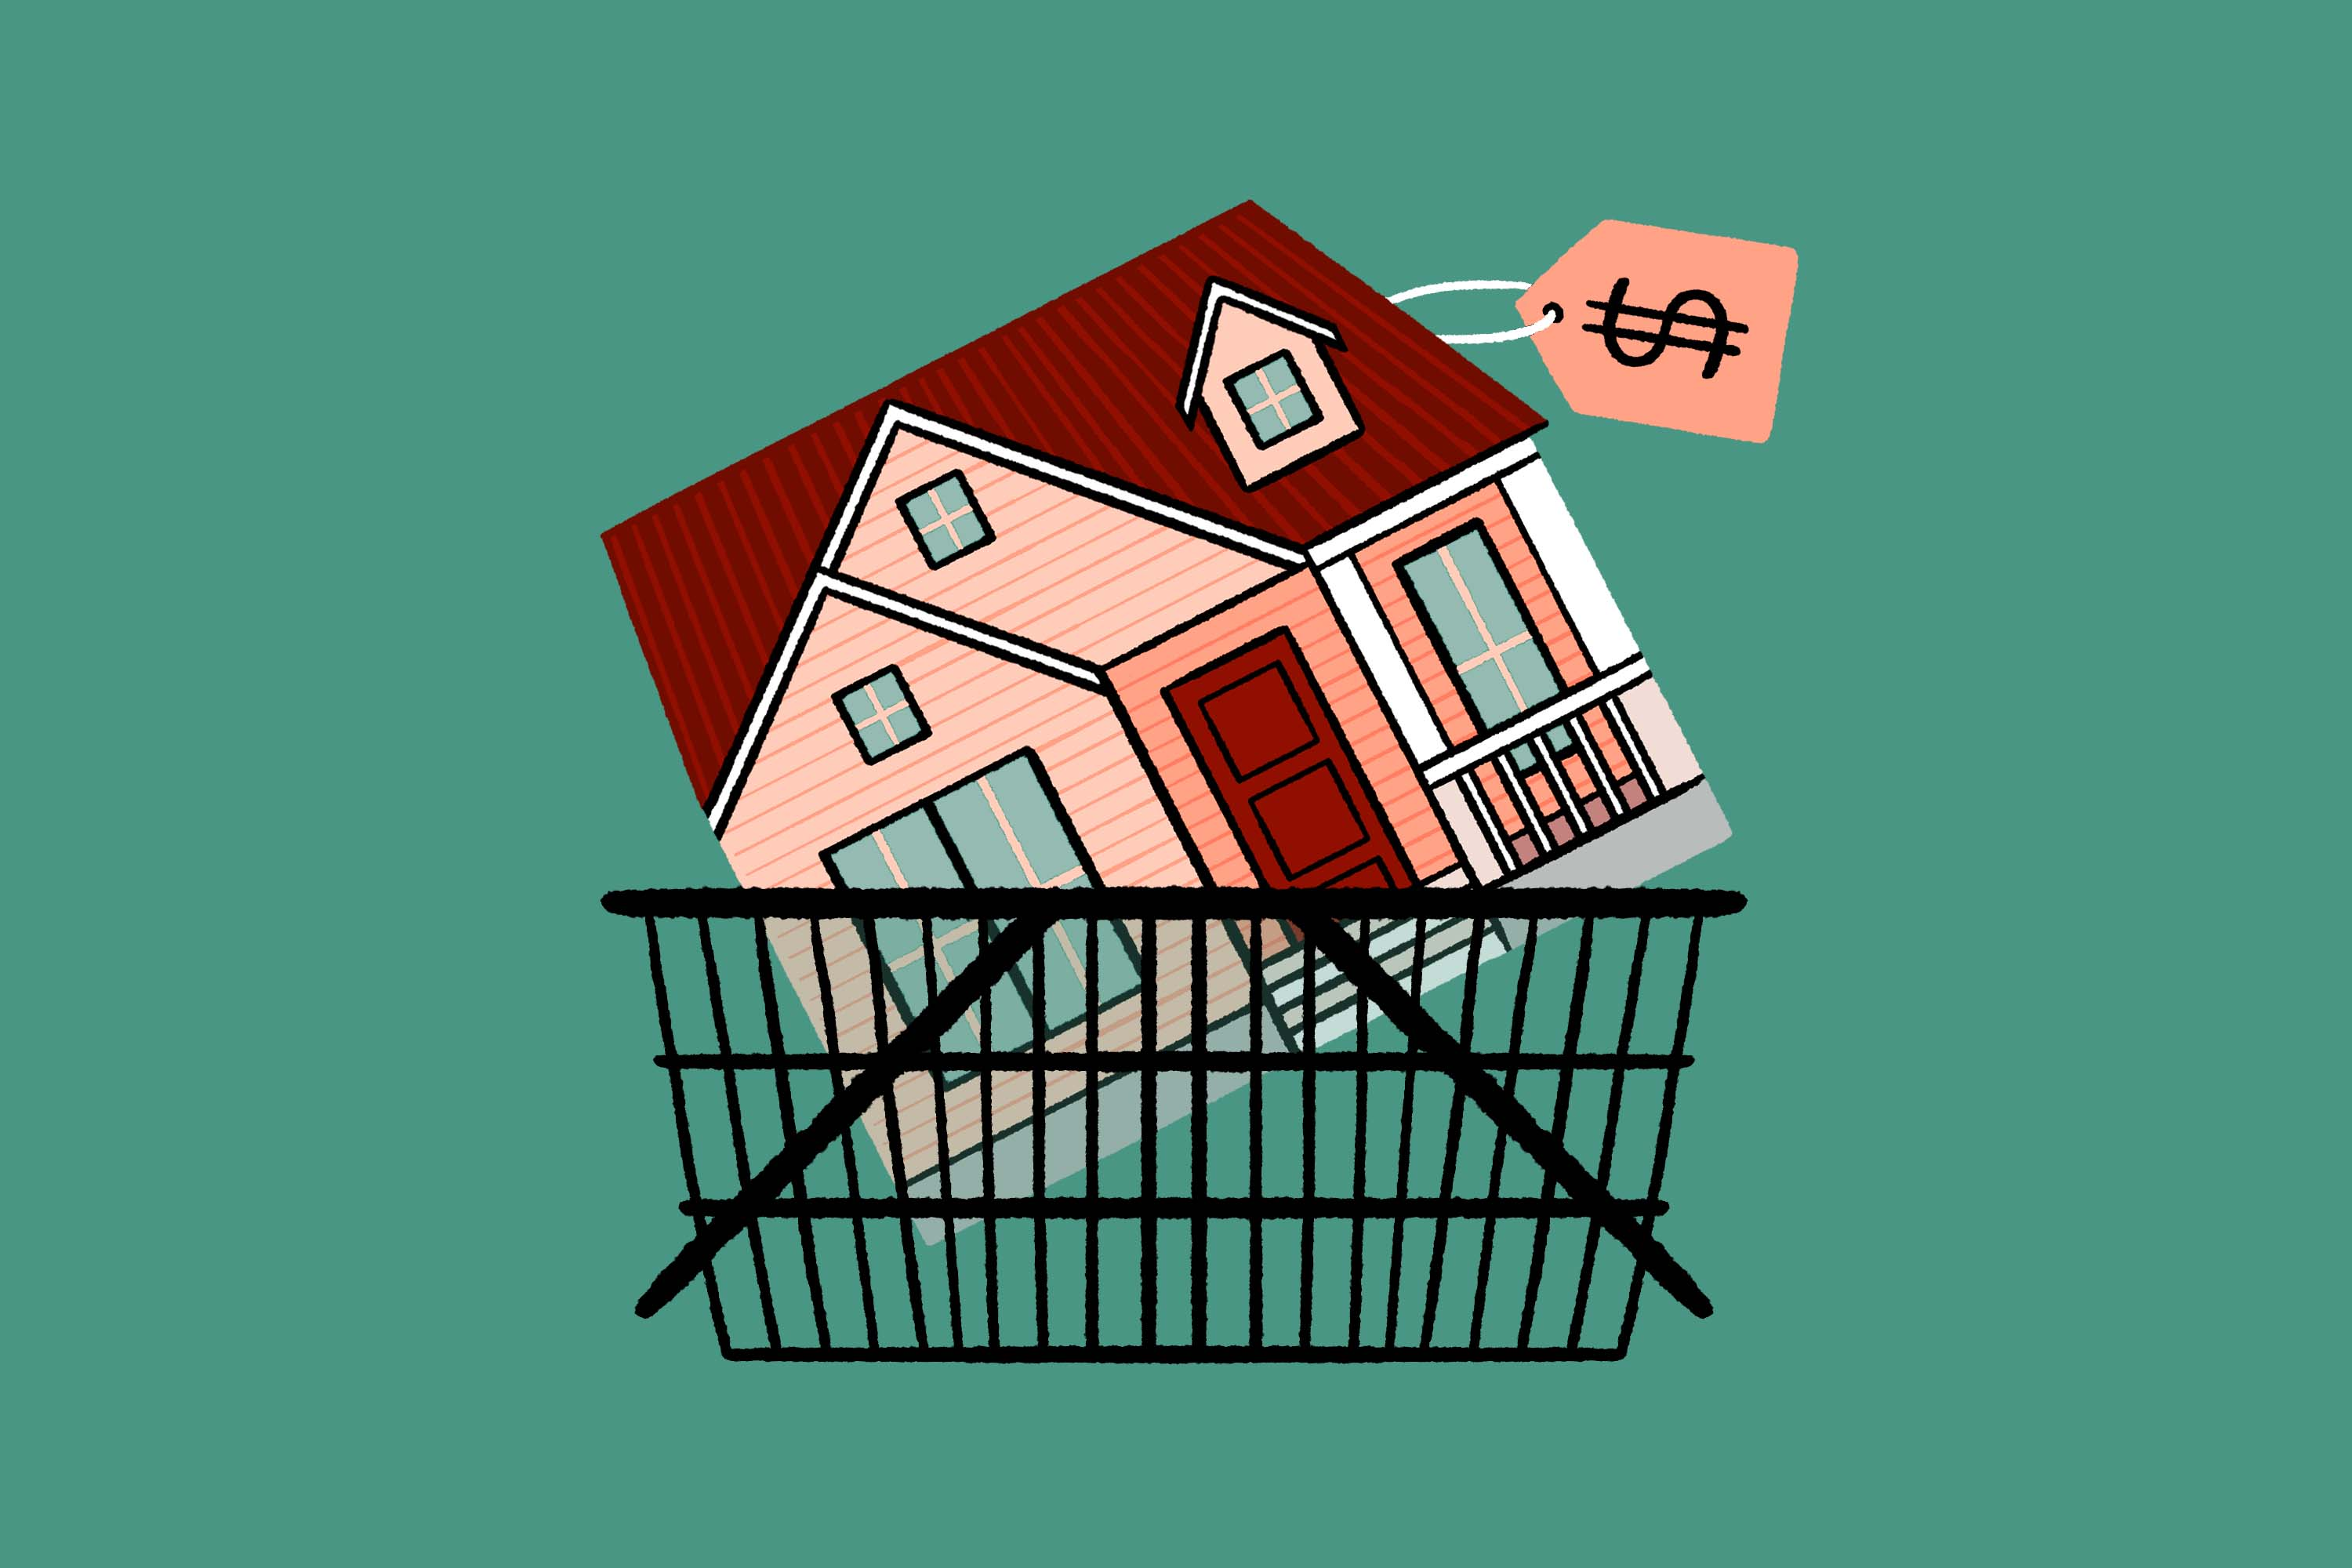 The real estate transaction is broken. Tech companies want to fix it